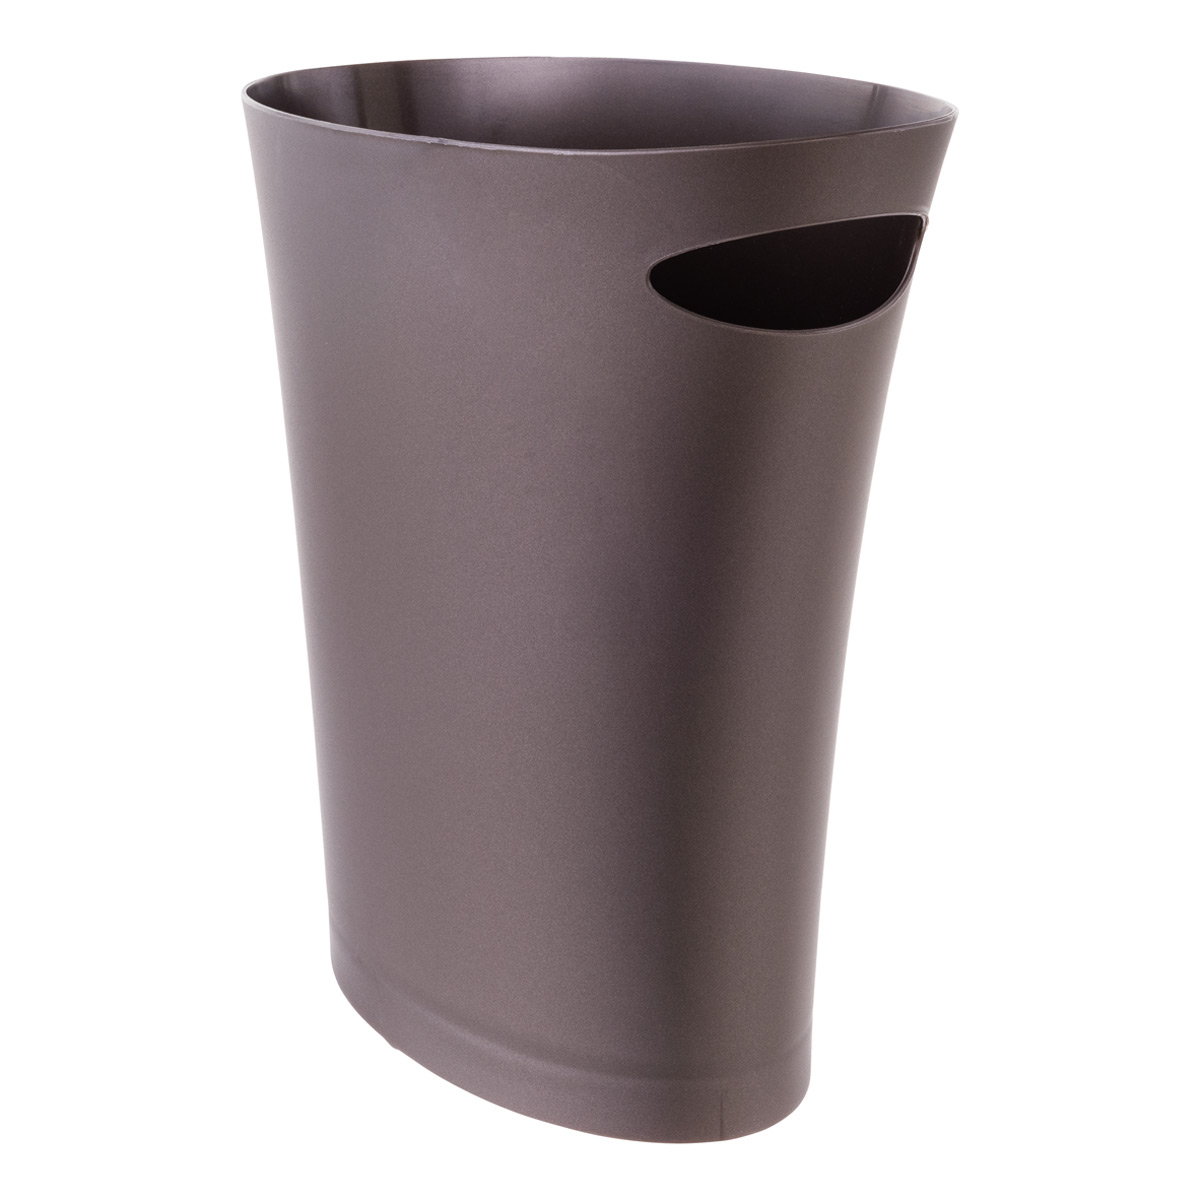 Umbra Champagne Skinny Trash Can